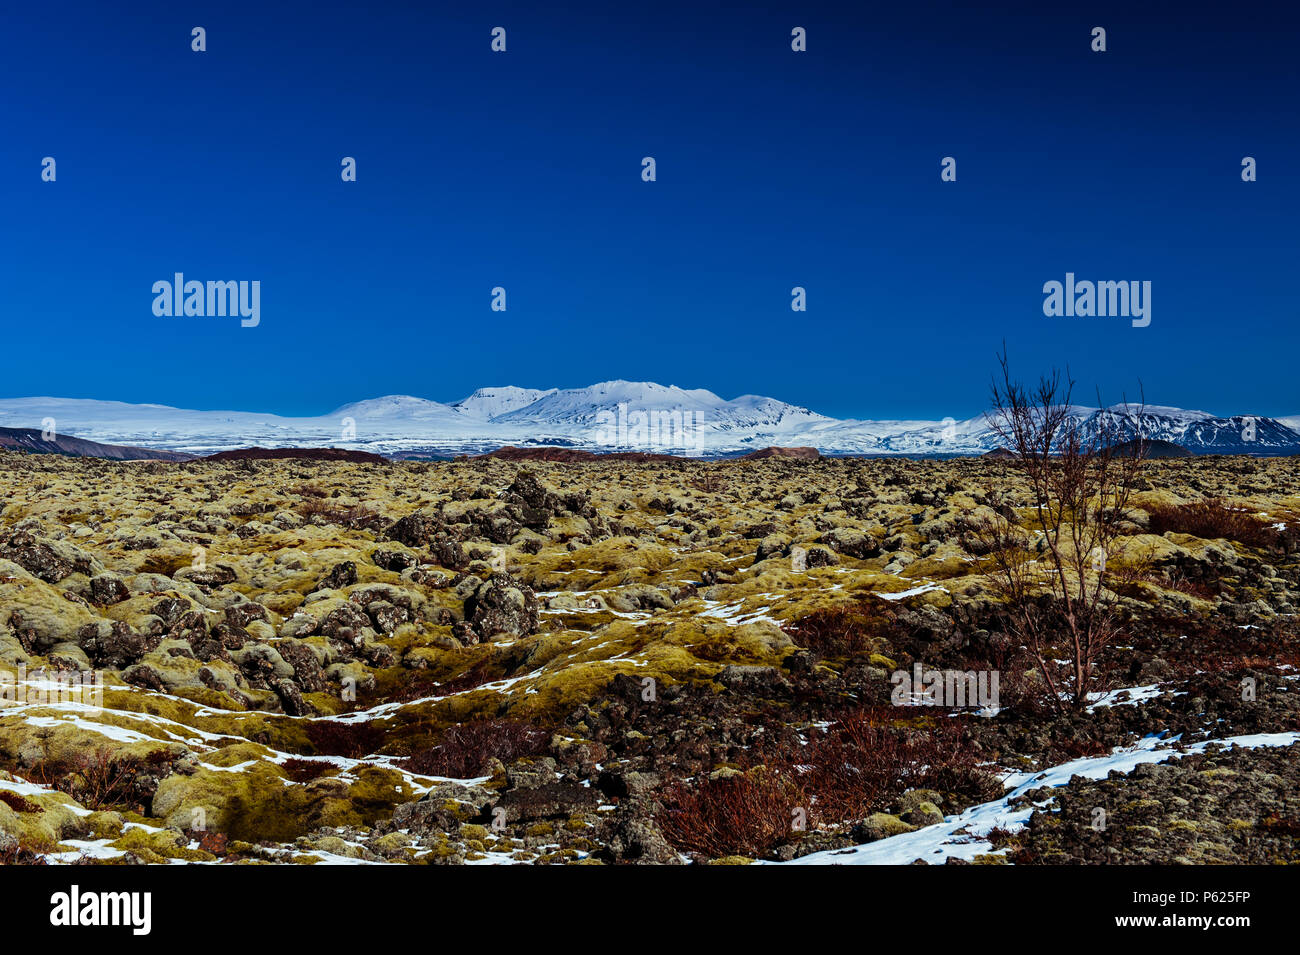 impression of icelands desoltae landscape in thingvellir national park around thingvallavatn lake coevred in contrasty vivid colours, april 2018 - Stock Image